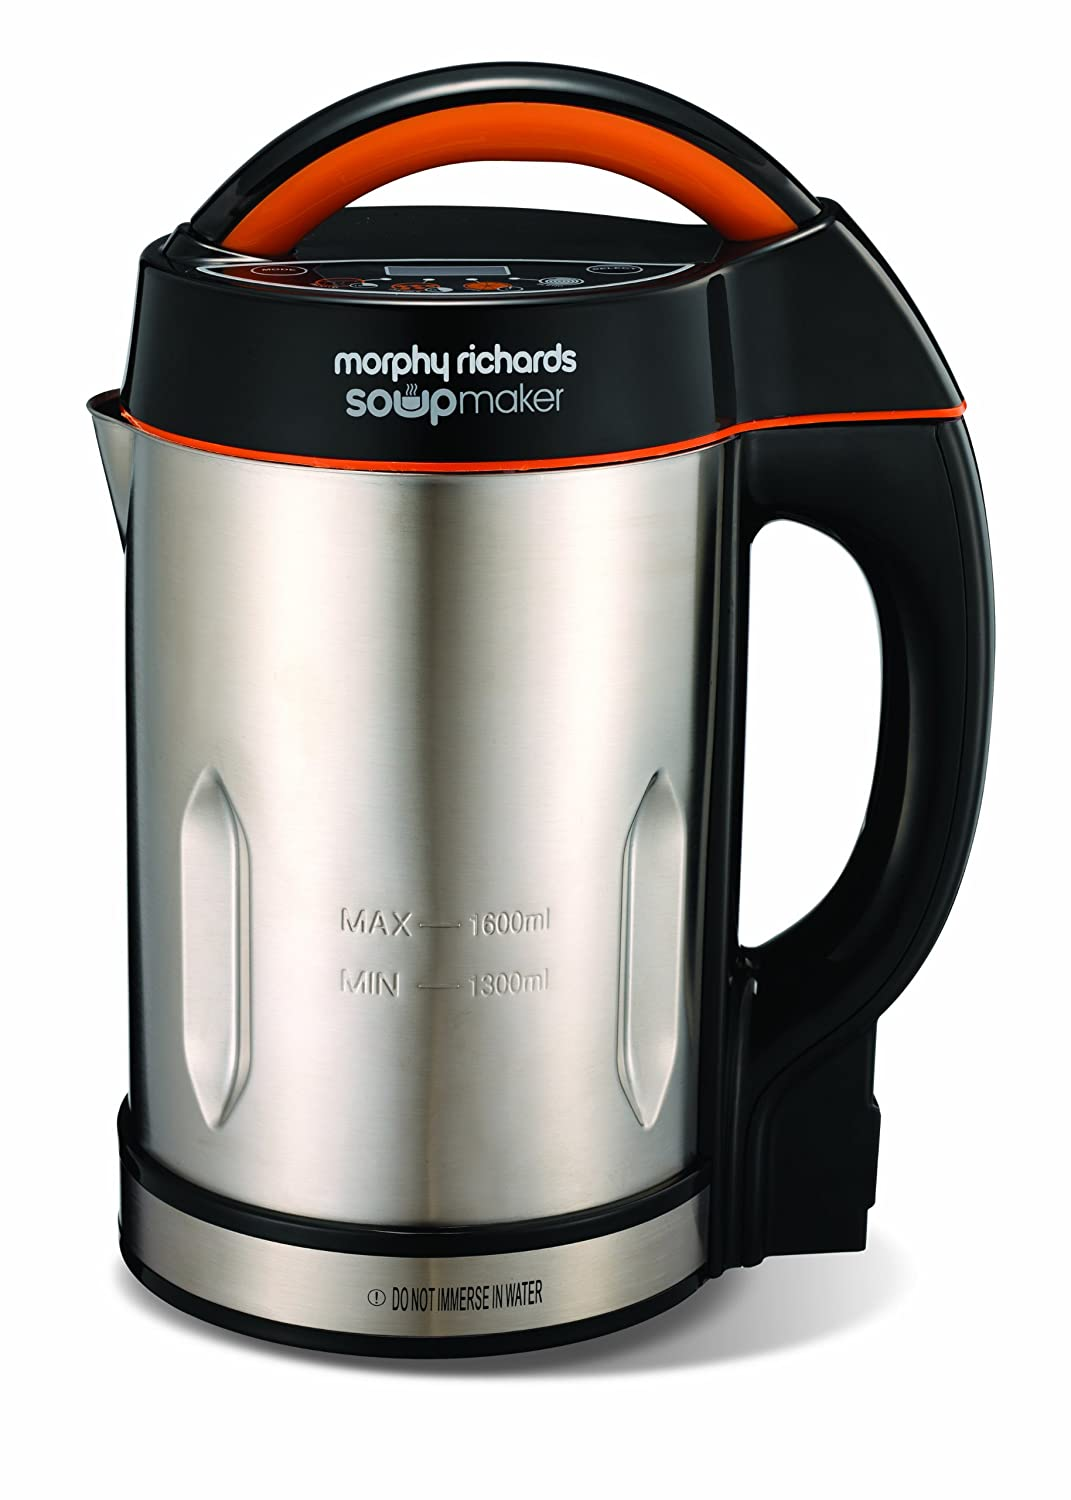 The Best Soup Maker In 2015 2016 Reviewinsider Uk